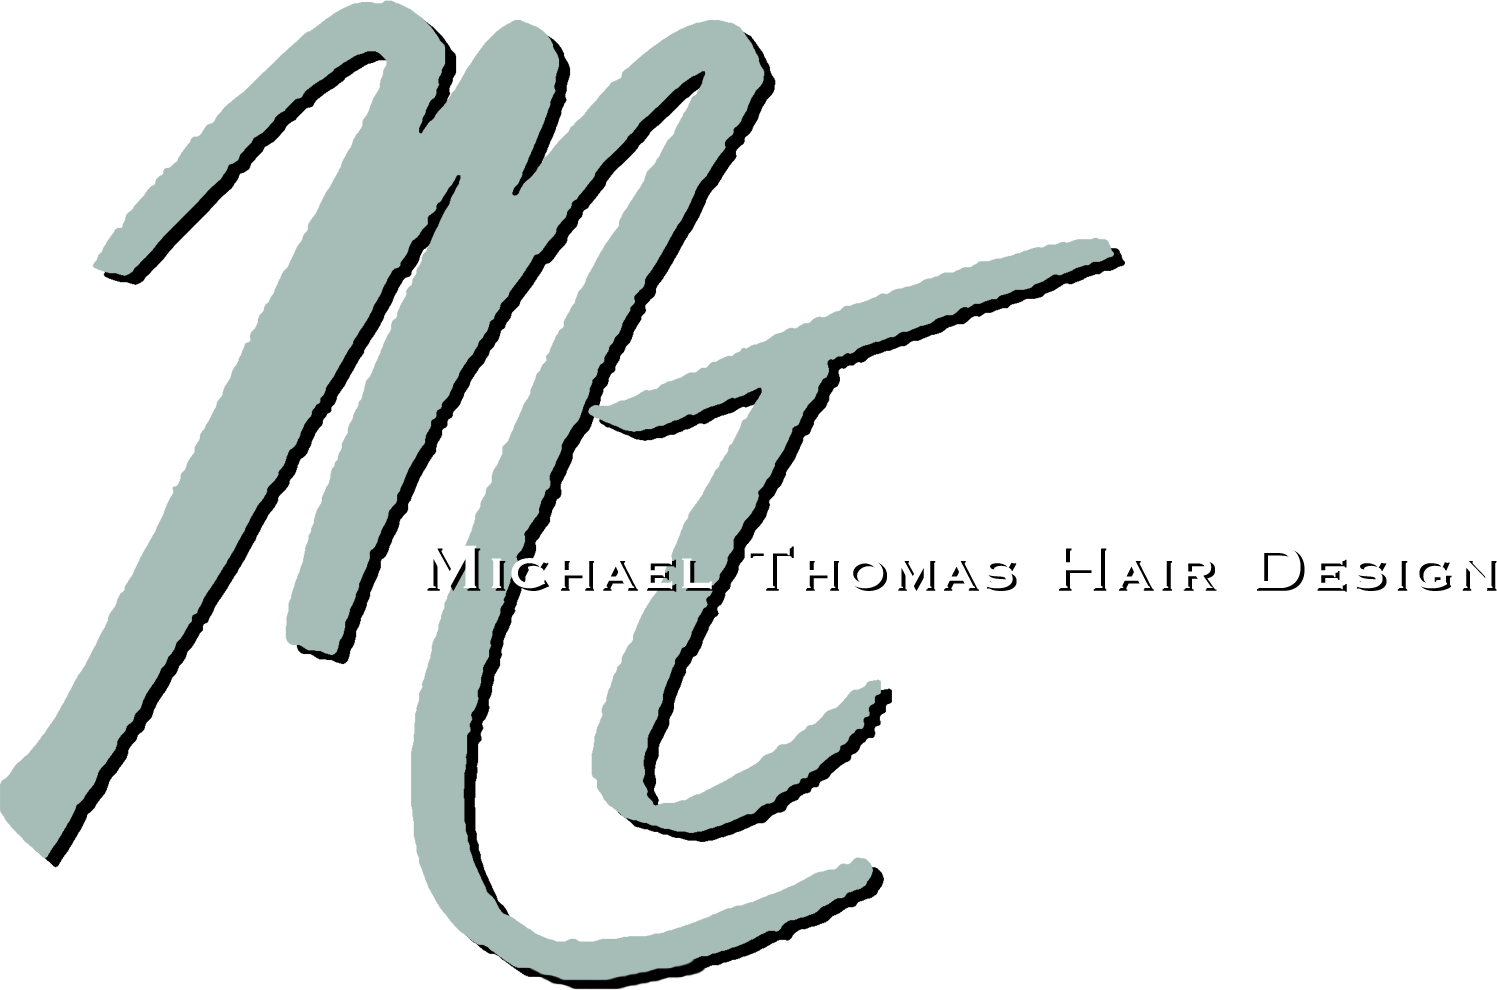 Michael Thomas Hair Design